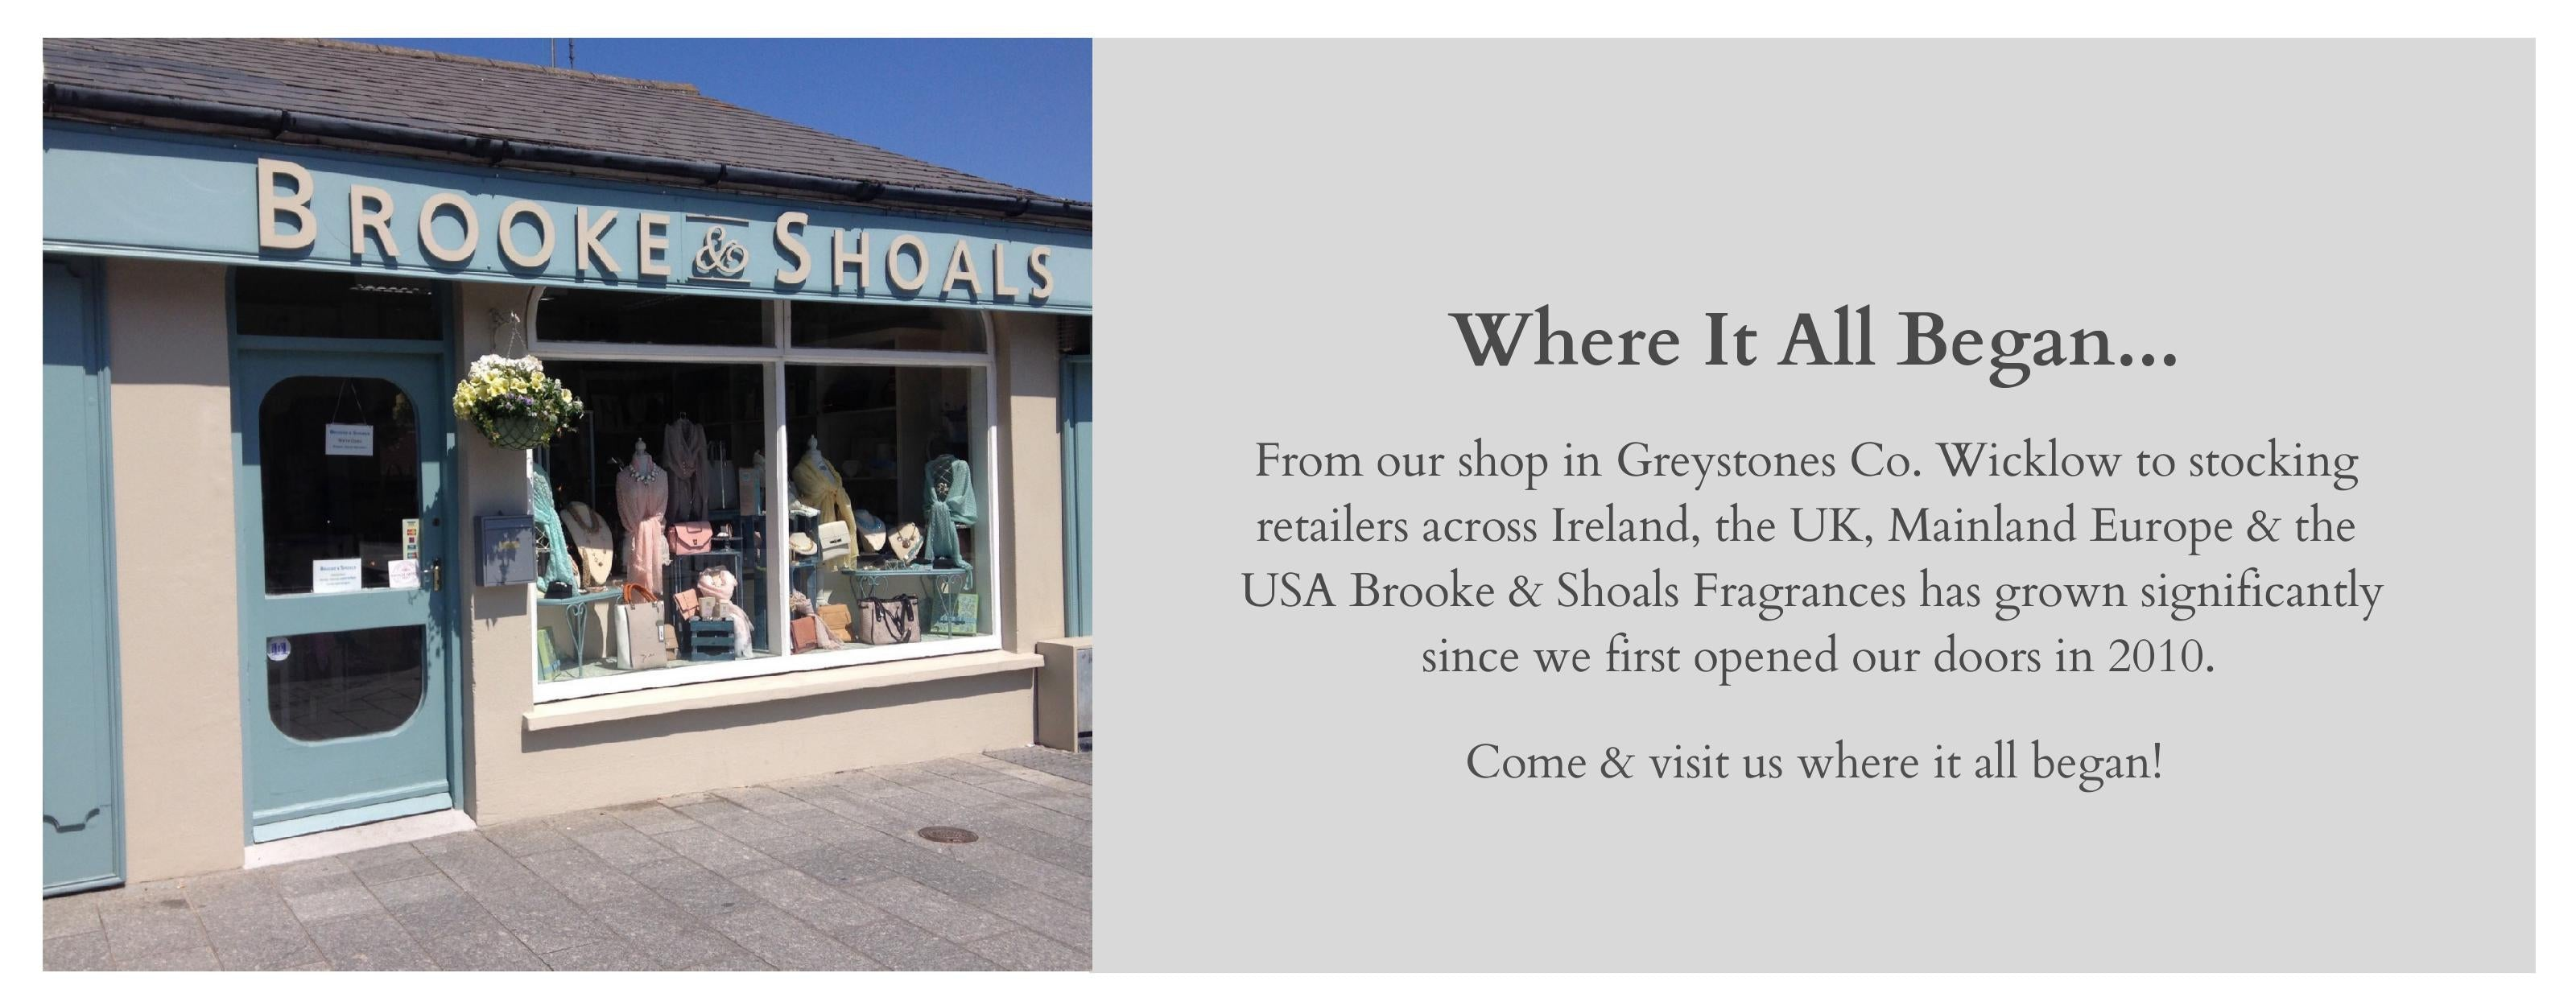 Brooke & Shoals Shop Greystones